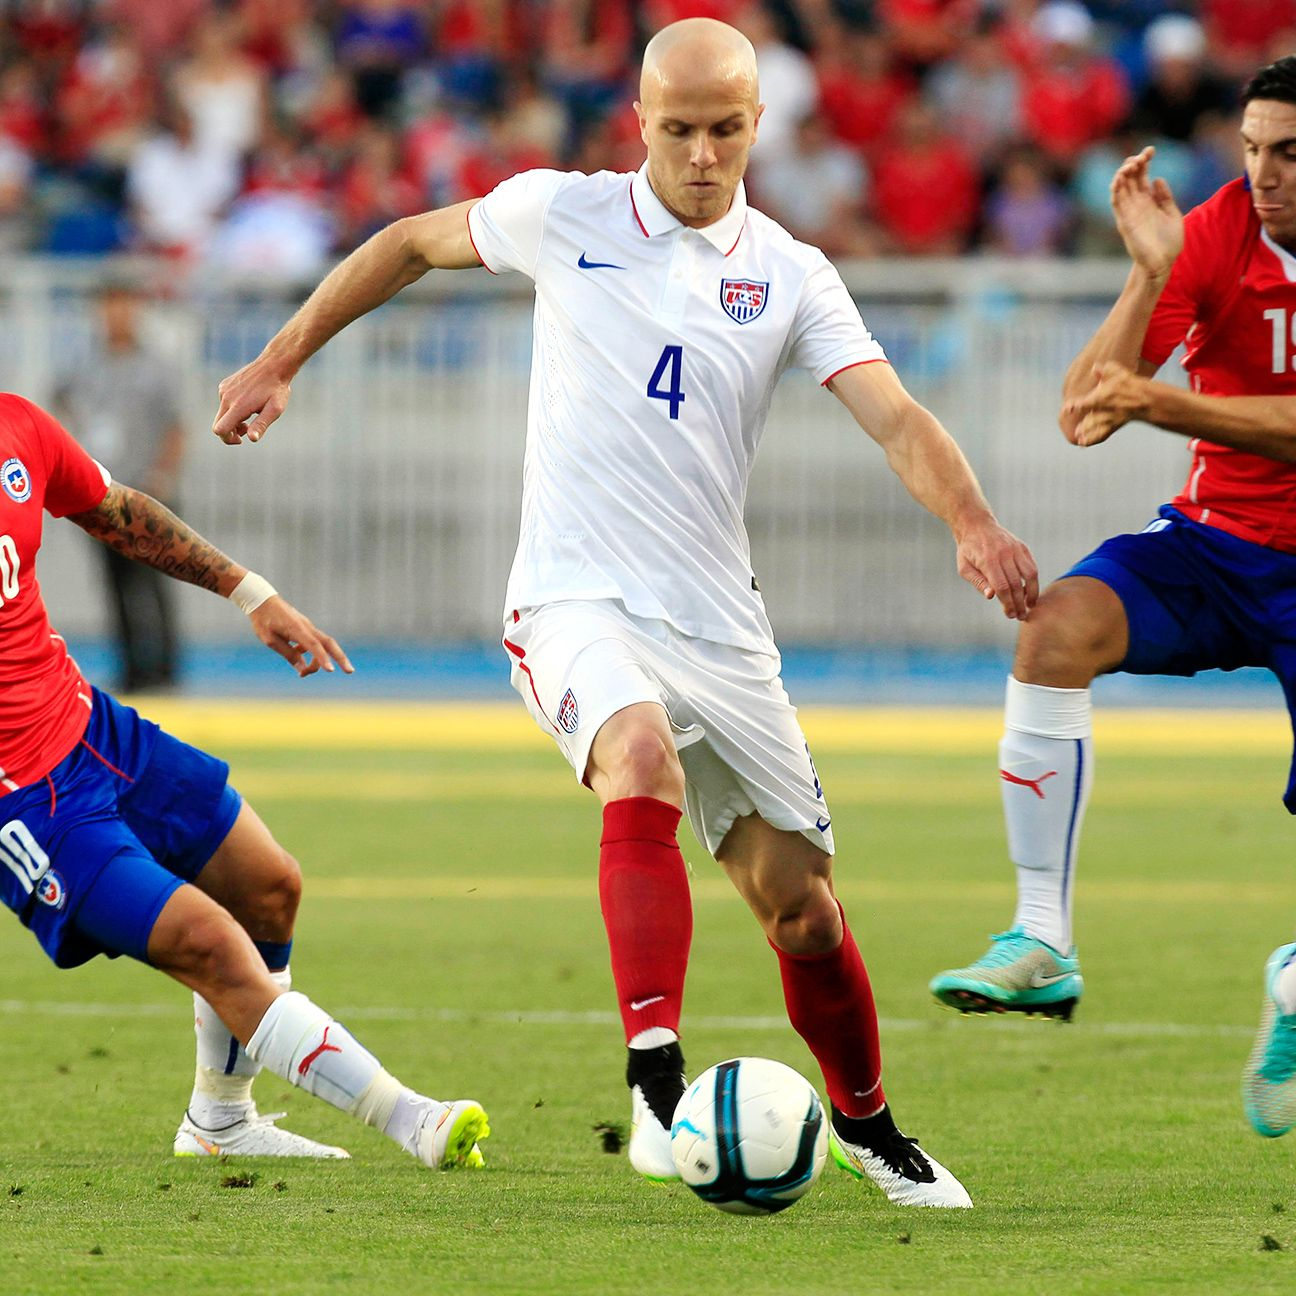 Whom should Jurgen Klinsmann surround Michael Bradley with in central midfield?